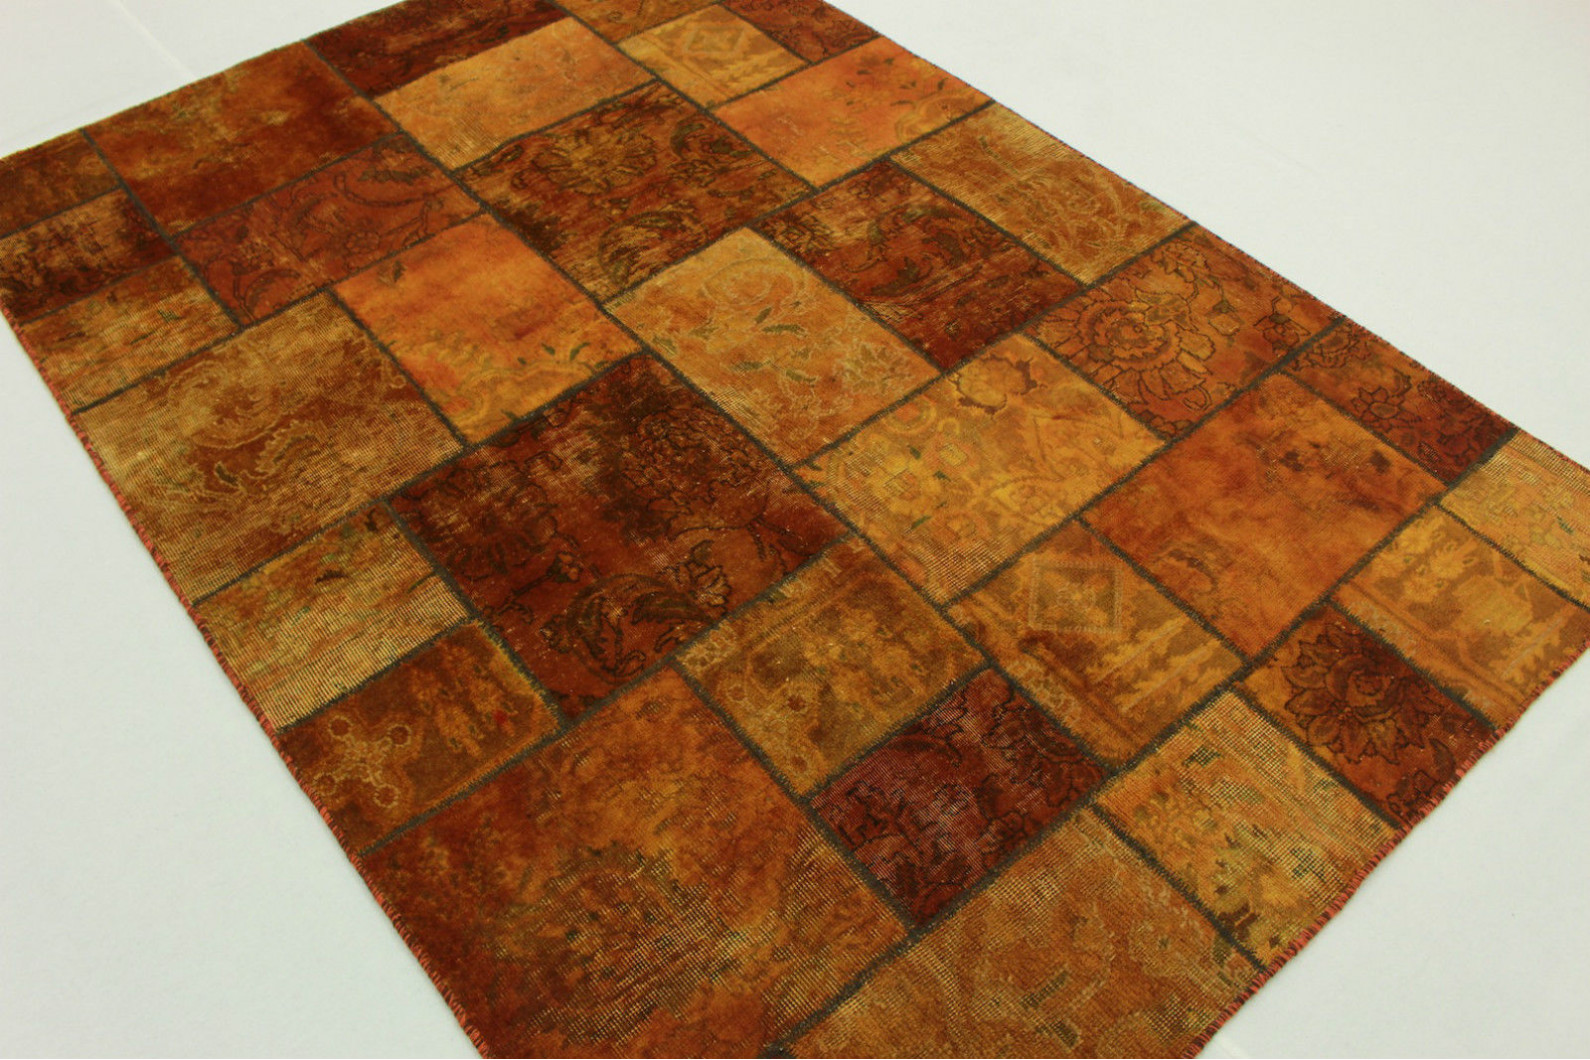 Teppich orange  Patchwork Teppich Orange Braun in 240x170cm (1001-2092) bei ...